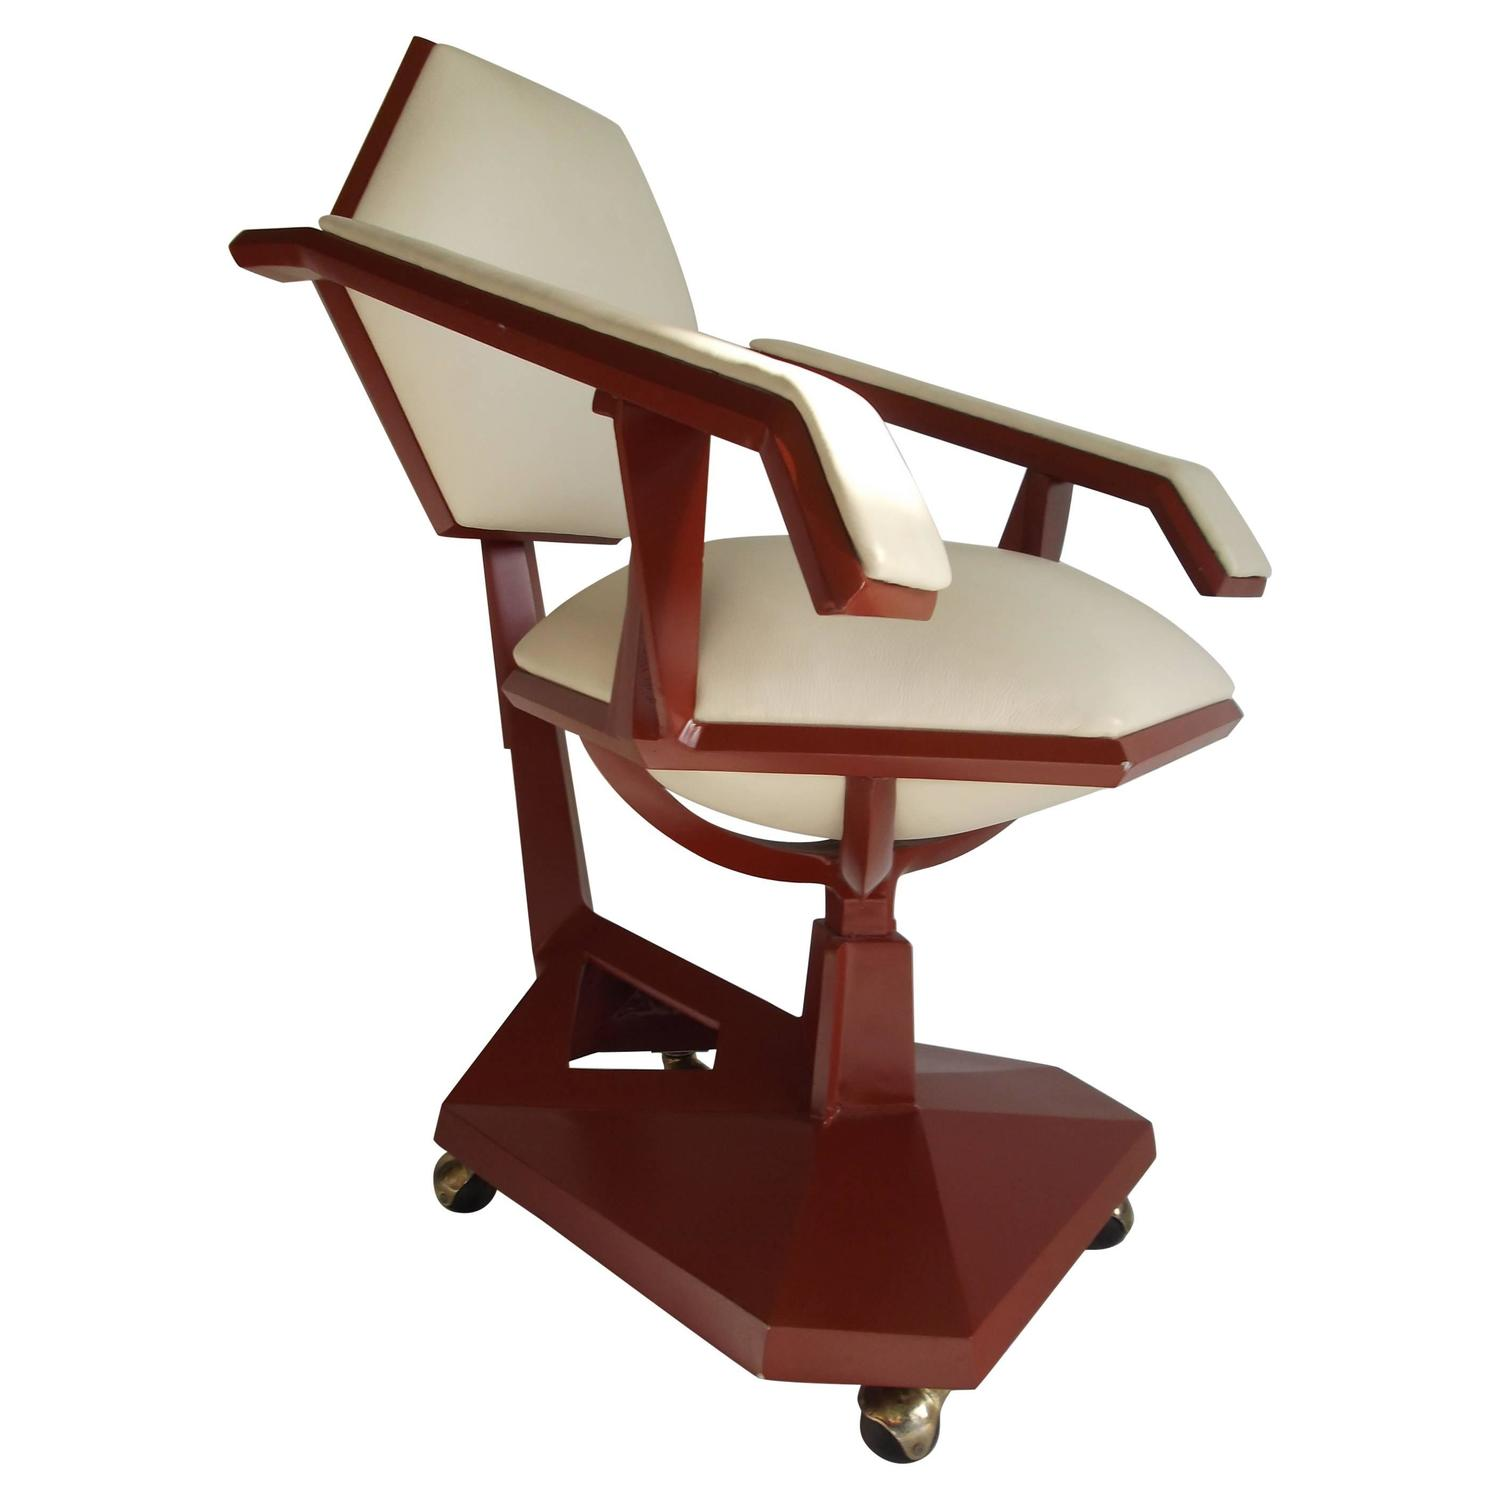 frank lloyd wright chair z